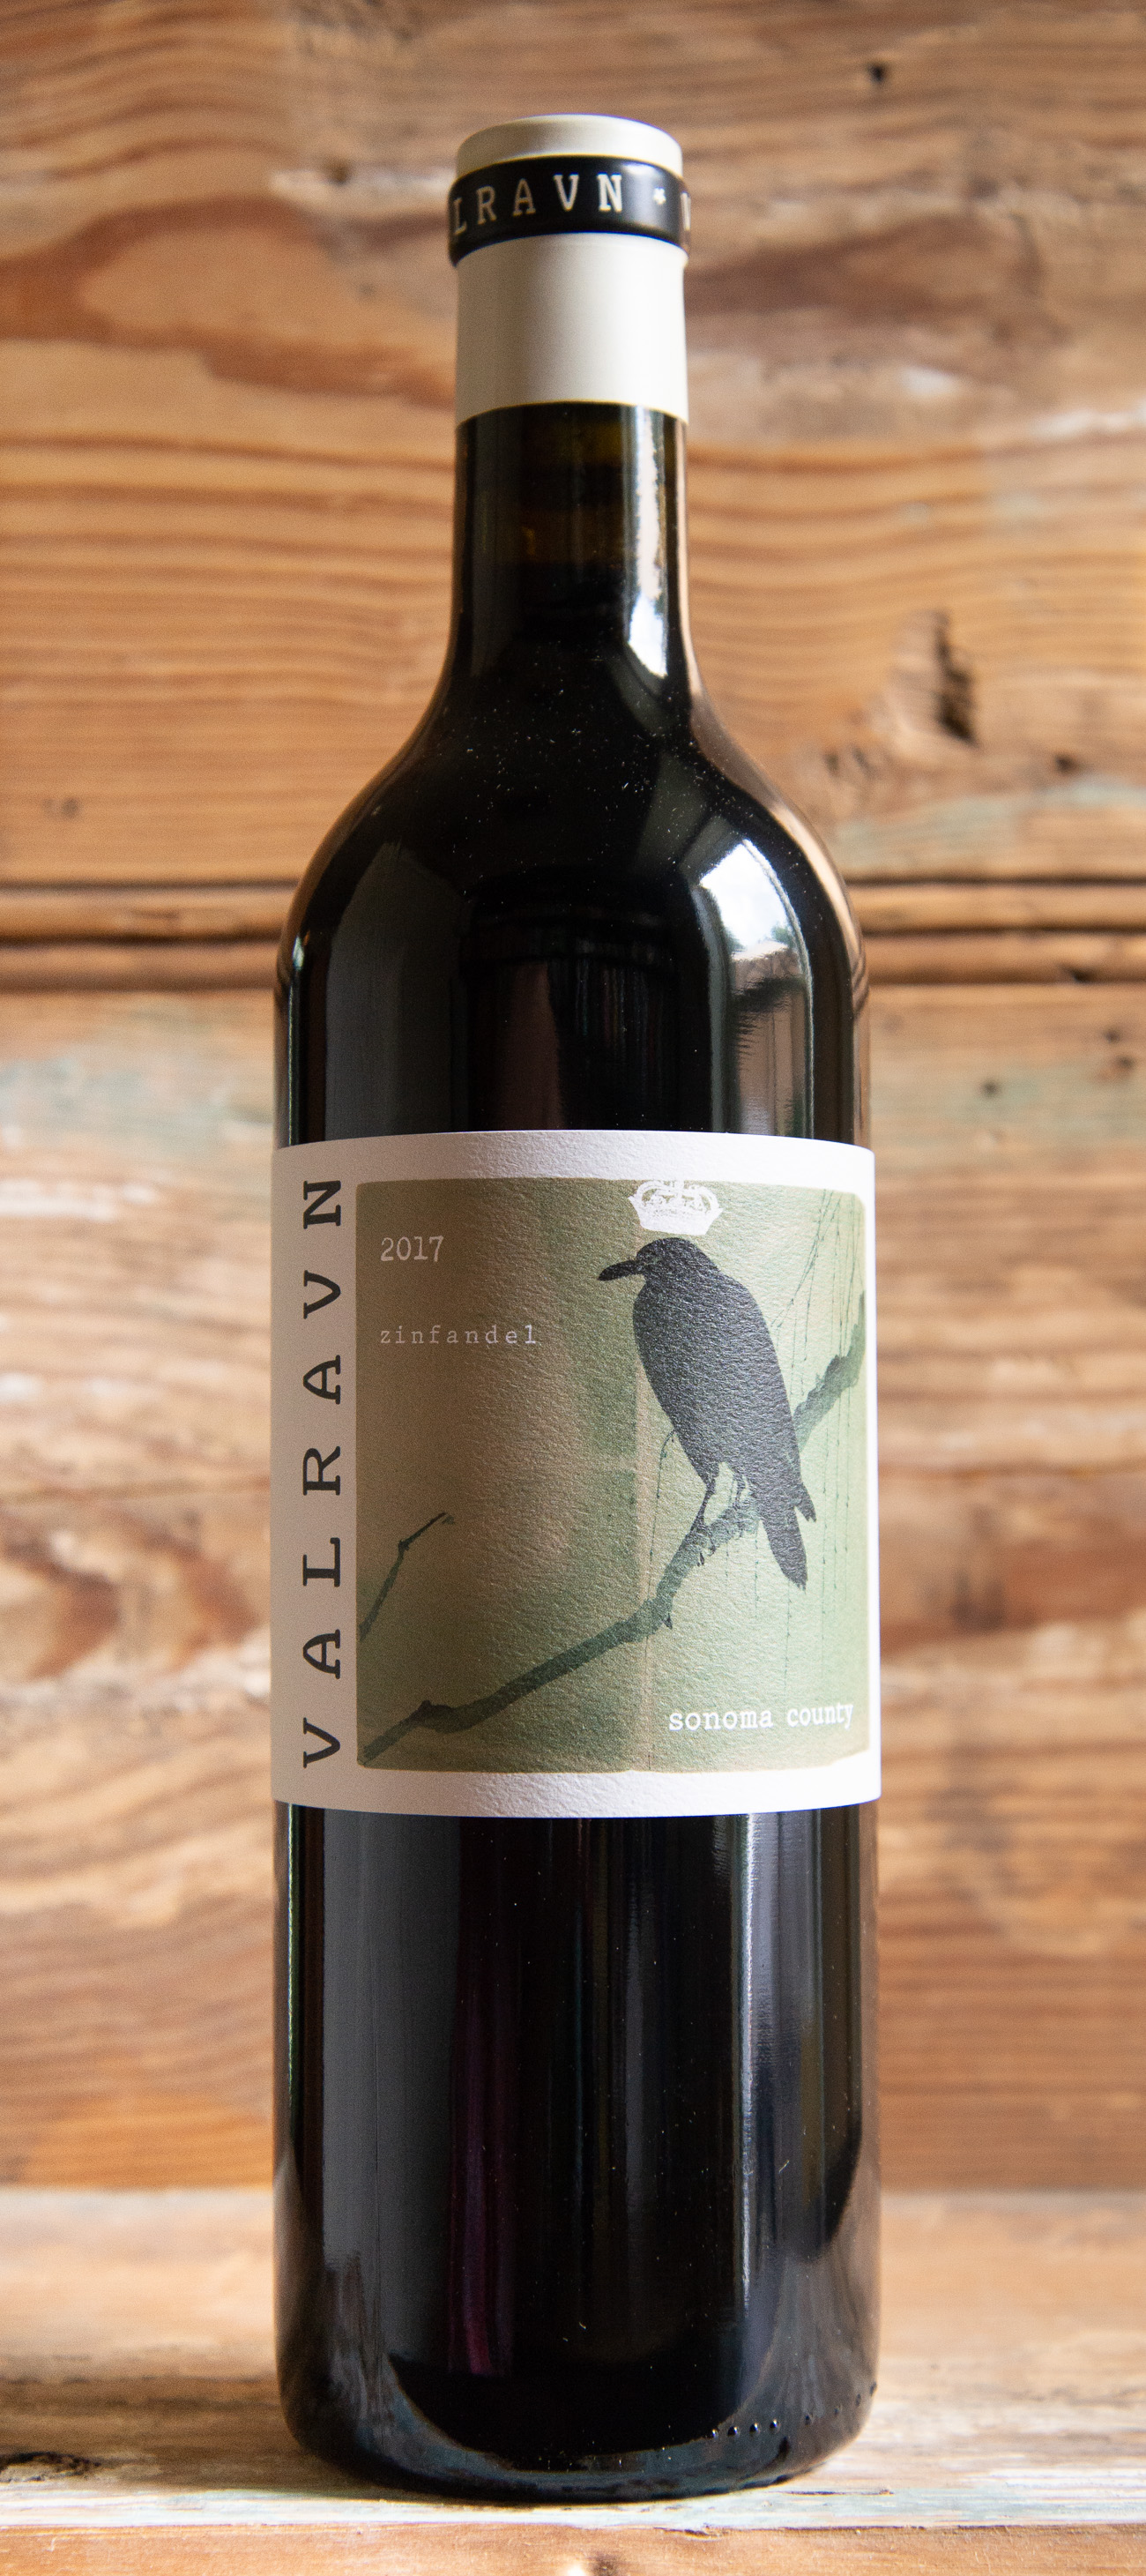 Valravn Zinfandel 2017 - Origin: CaliforniaRetail: $18.95 | Sale: $17.05Bright aromas of dark cherry and black raspberry with slight undertones of white pepper spice. The palate is warm with dark fruit flavors of blueberry, cassis, and blackberry compote which are complemented with briary notes and an energetic freshness. Strikes ideal balance of tannins, fruit and acidity. Great pizza wine! 100% Zinfandel